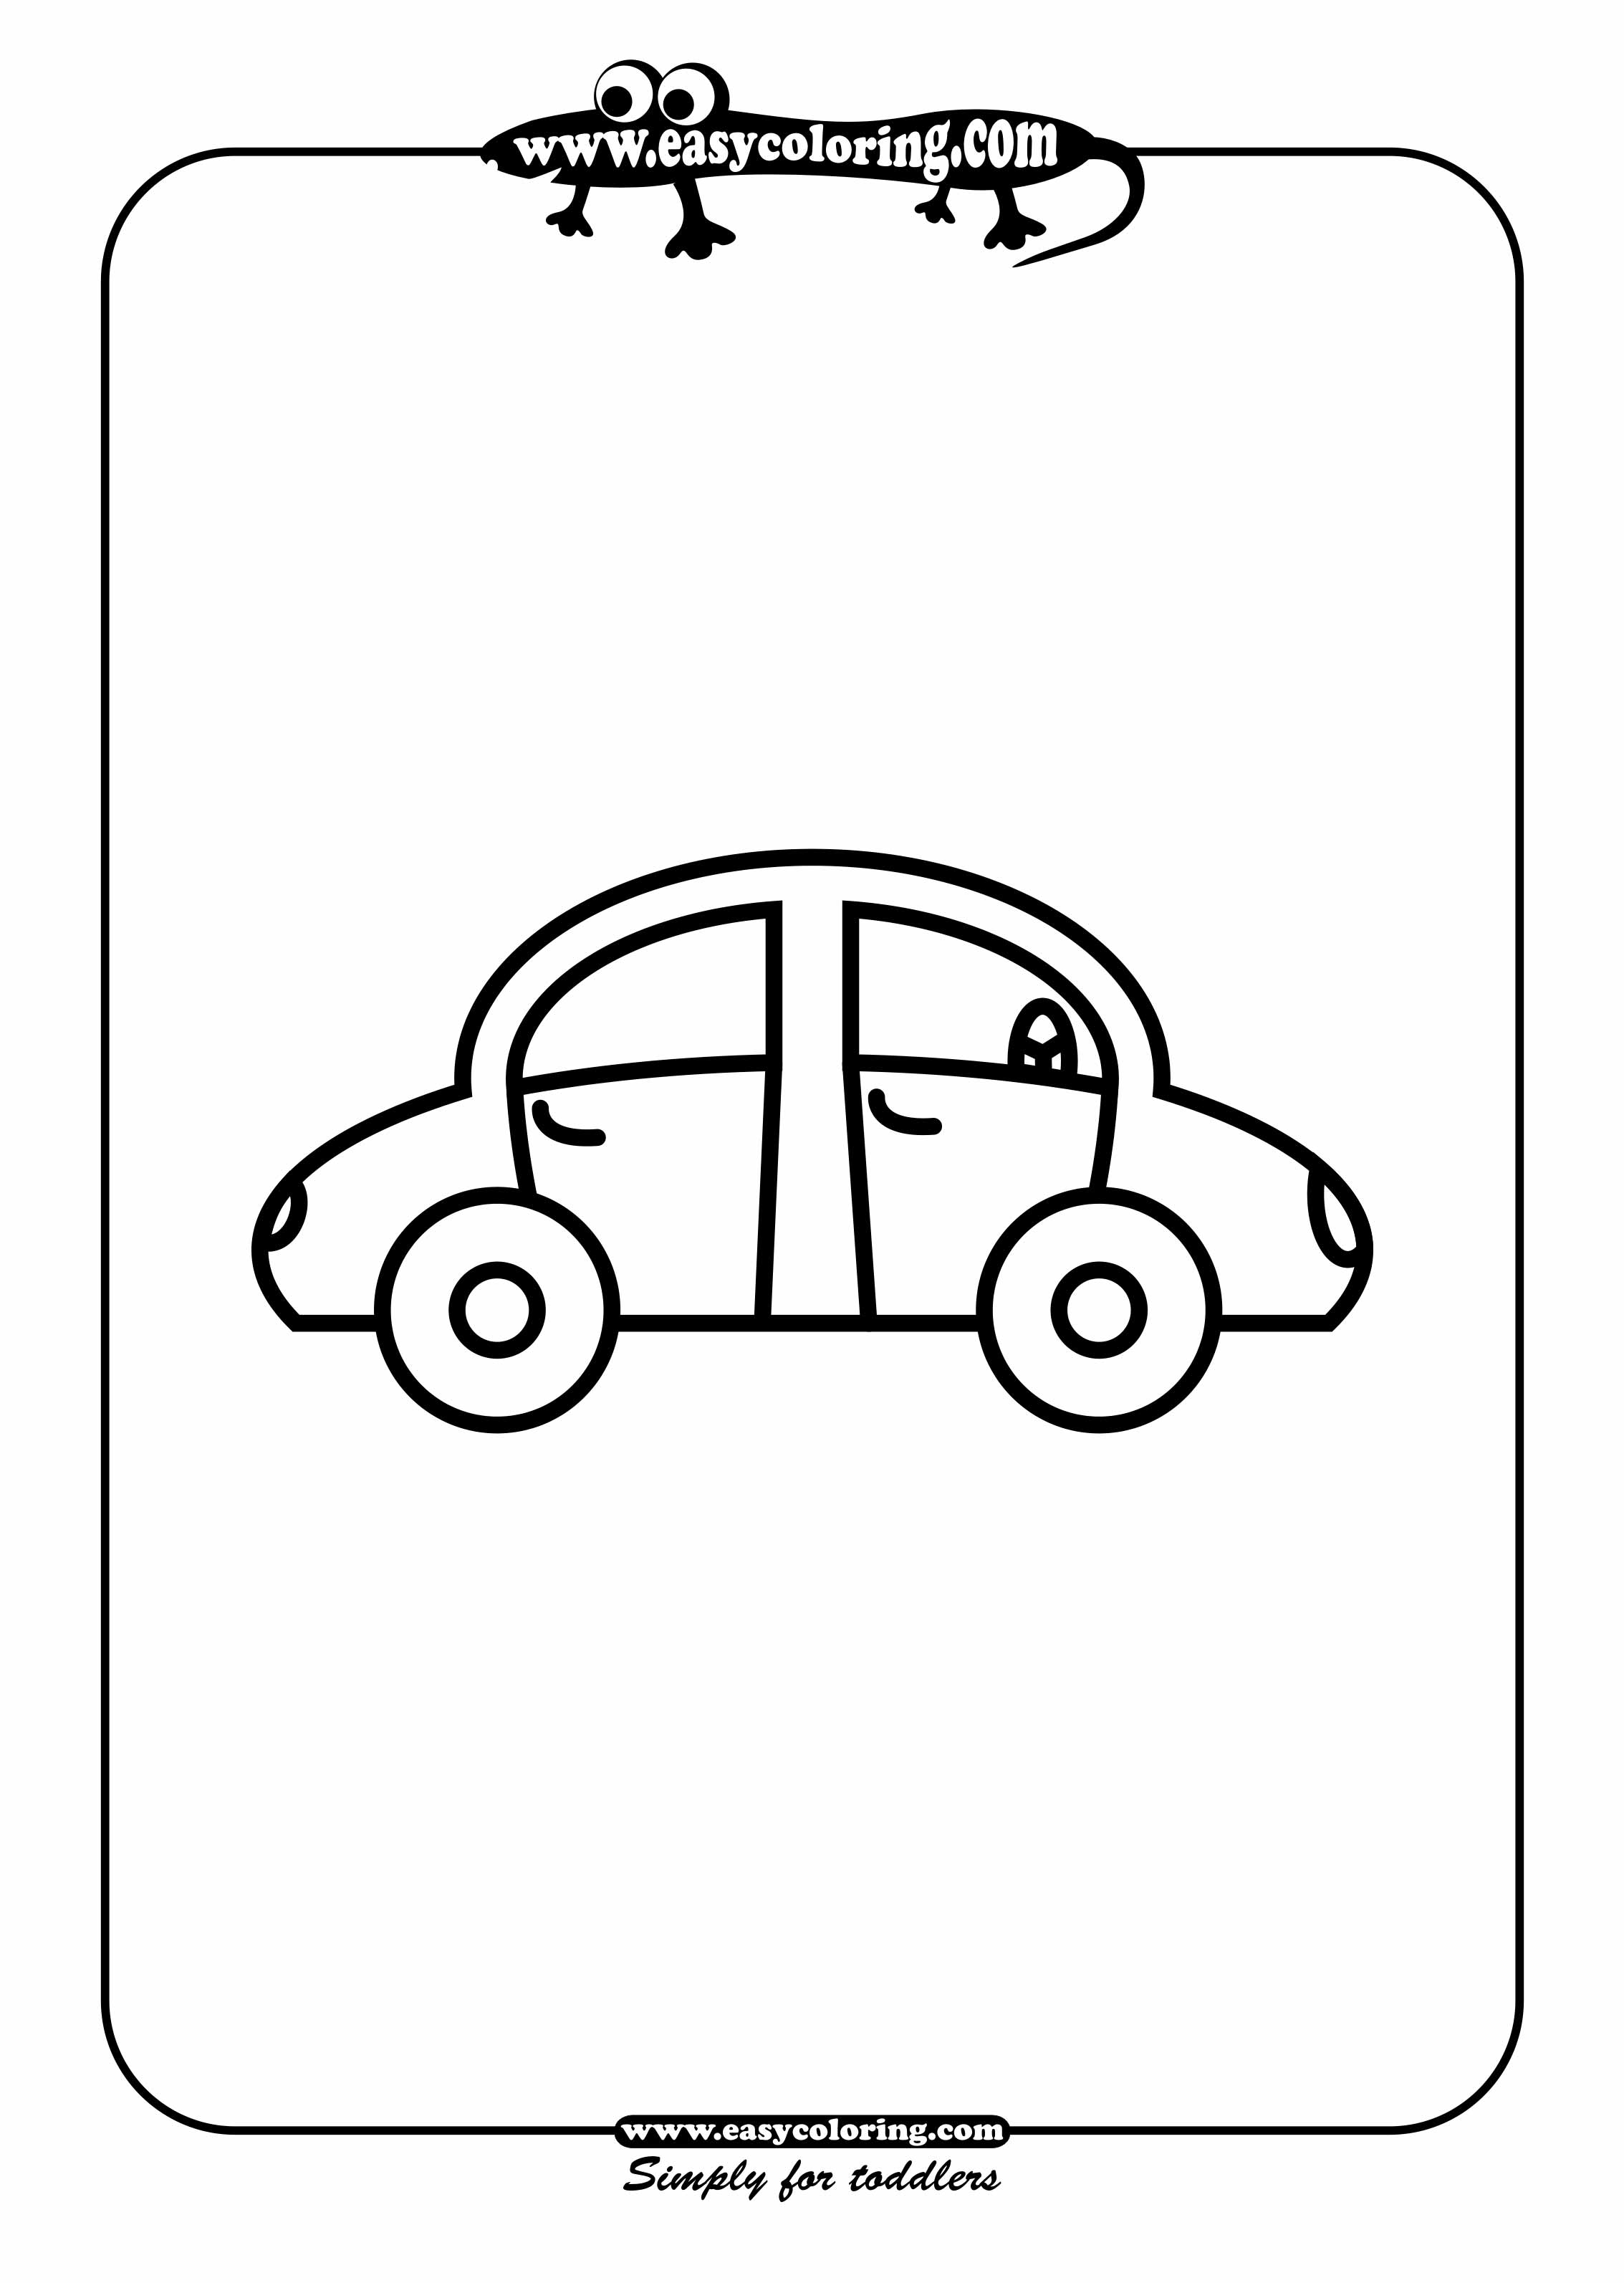 Starbucks Emoji Coloring Page Coloring Pages